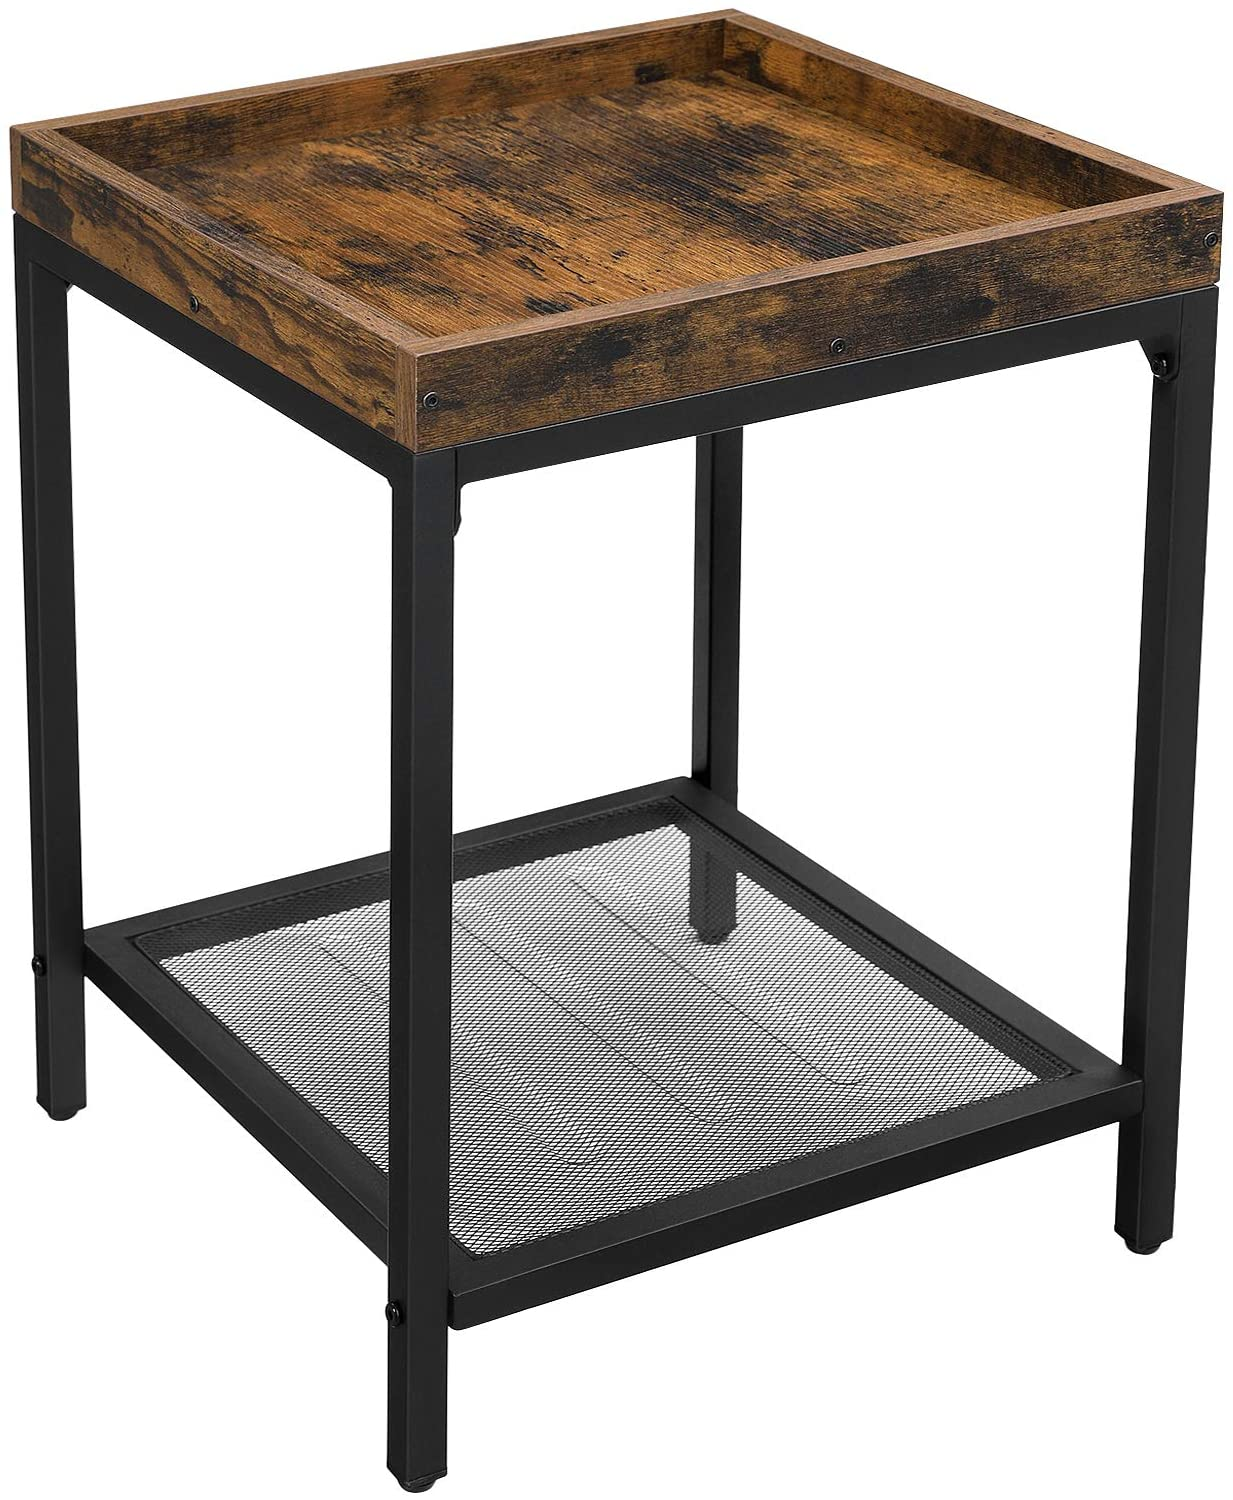 Enjoy fast, free nationwide shipping!  Family owned and operated, HawkinsWoodshop.com is your one stop shop for affordable furniture.  Shop HawkinsWoodshop.com for solid wood & metal modern, traditional, contemporary, industrial, custom, rustic, and farmhouse furniture including our Ryan Mesh Shelf Raised Edges Side Table.